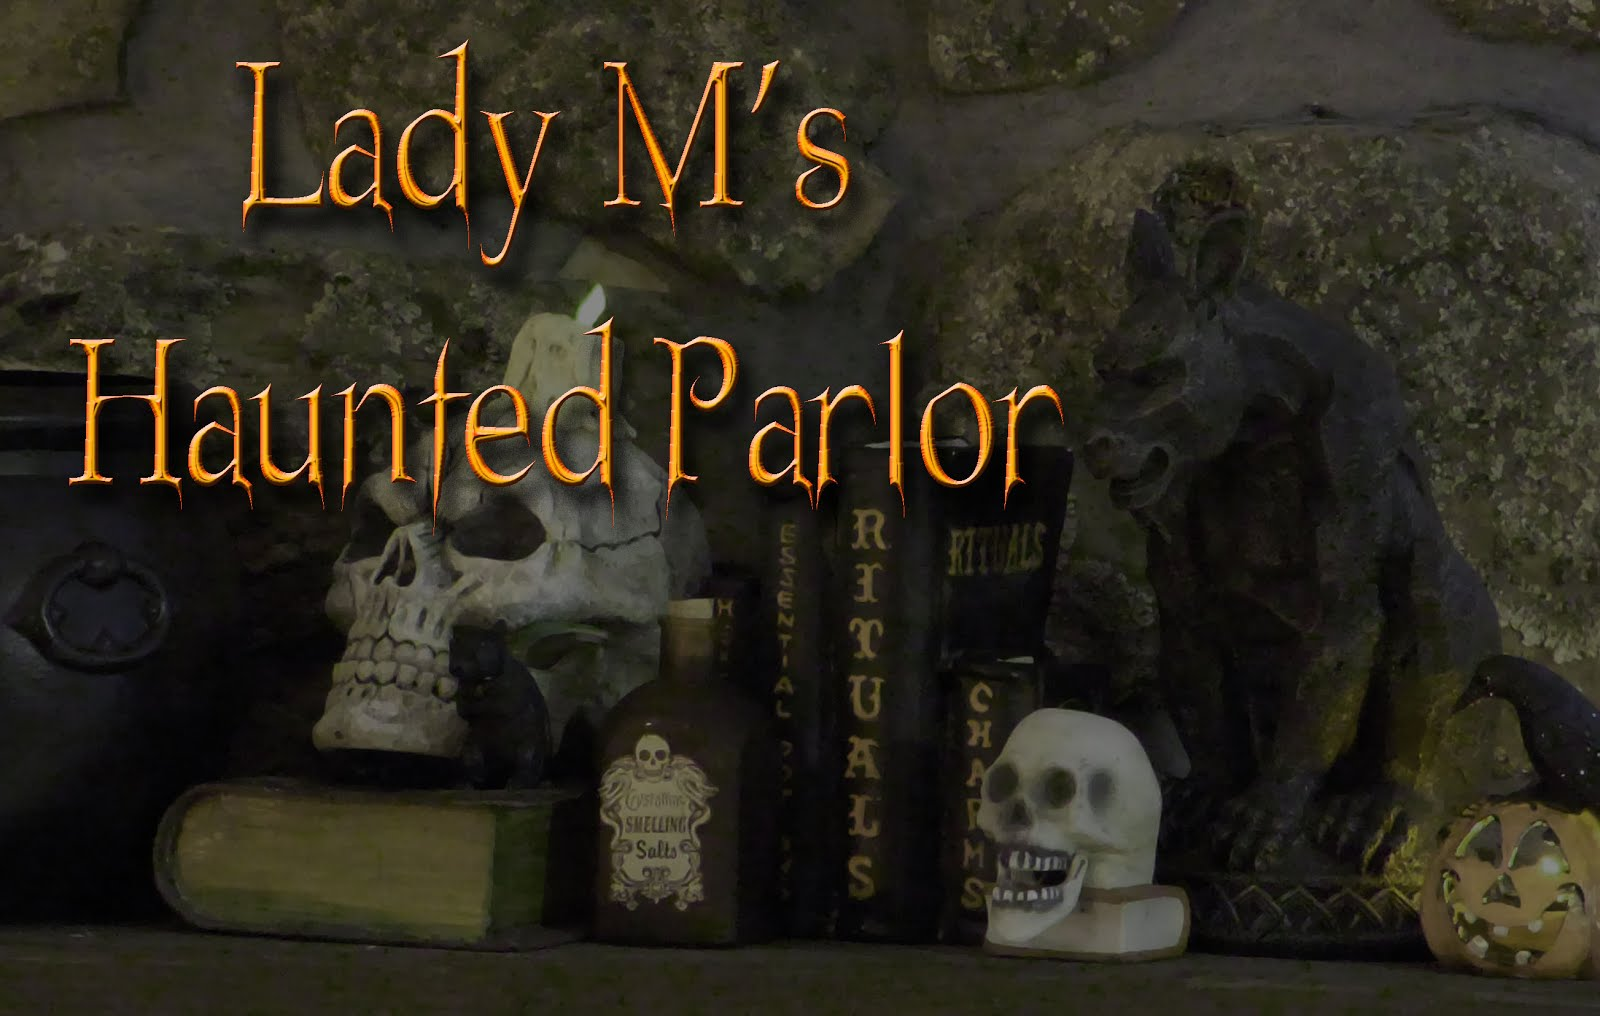 Lady M's Haunted Parlor